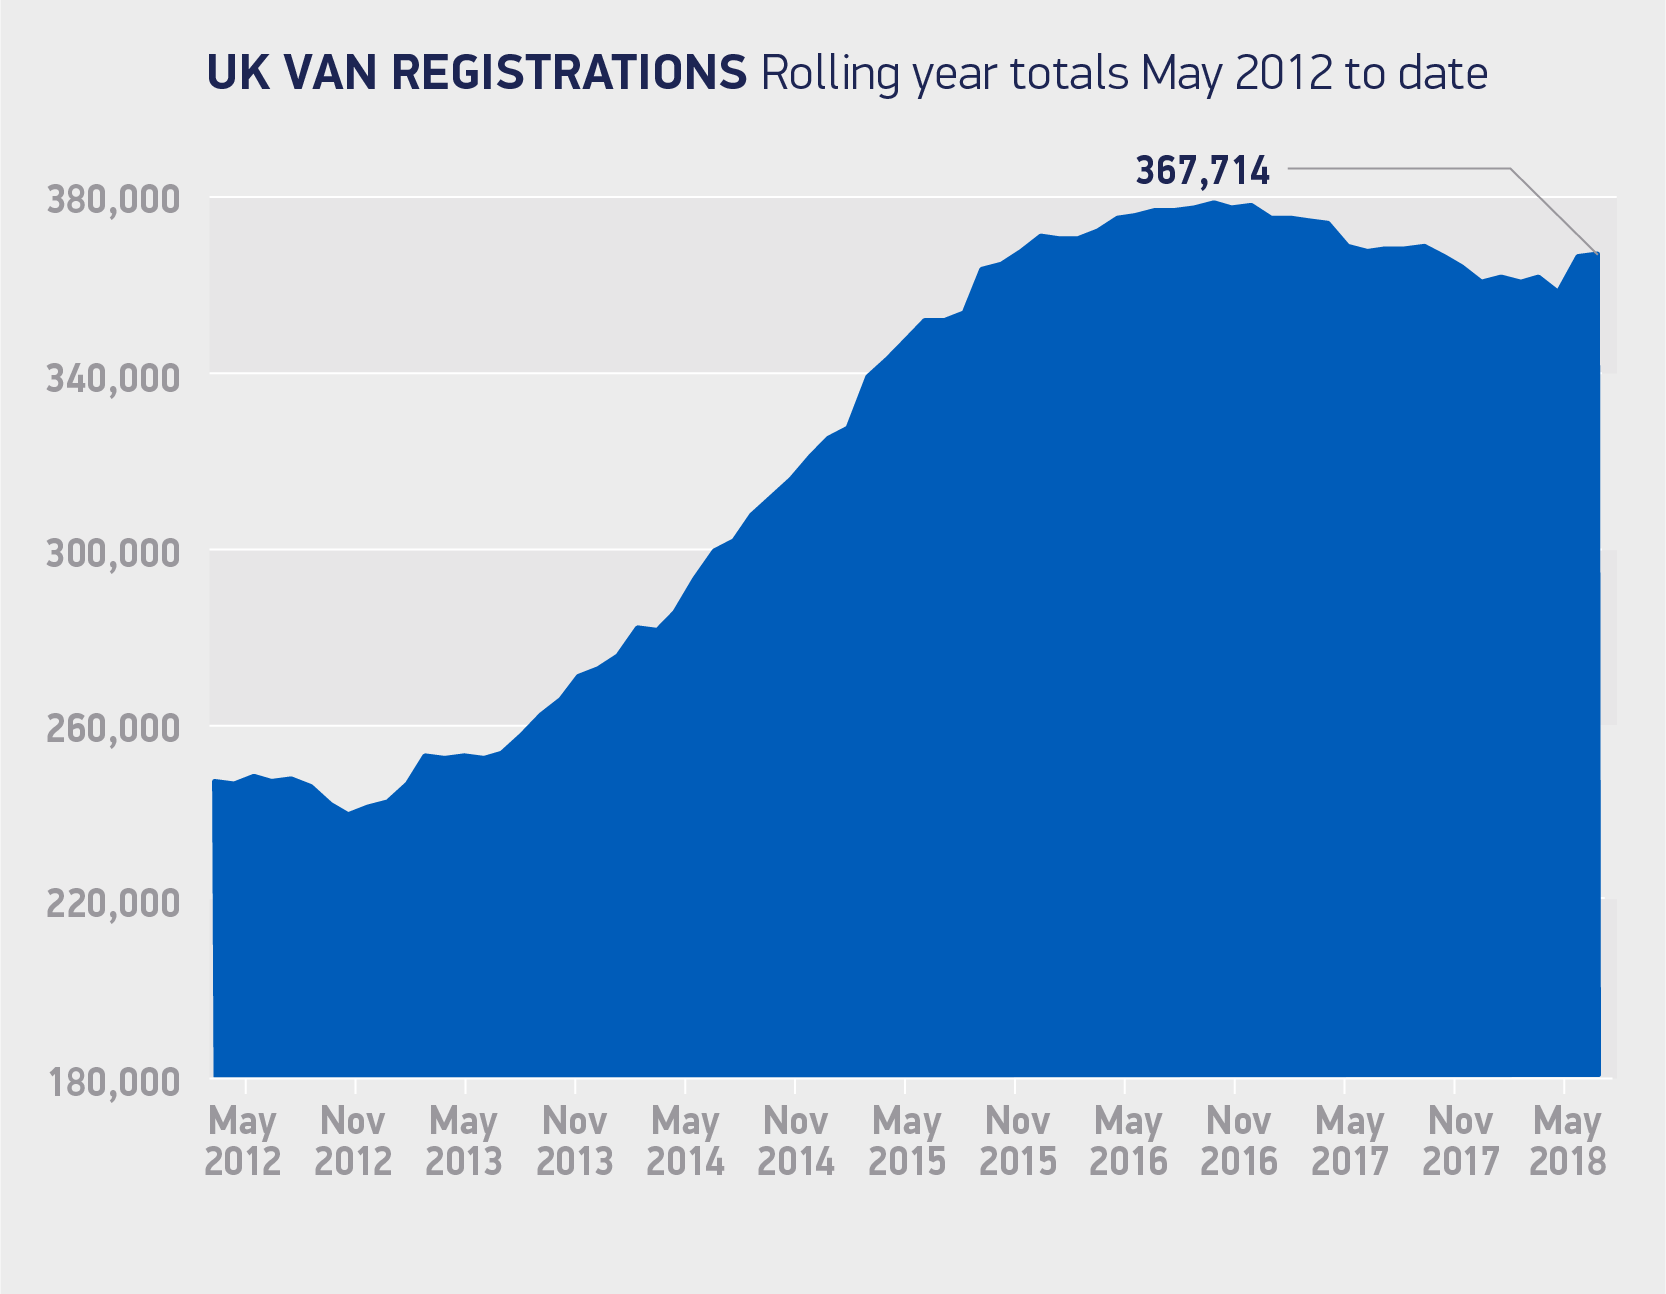 Van registrations rolling year totals May 2012 to-date 2018 chart